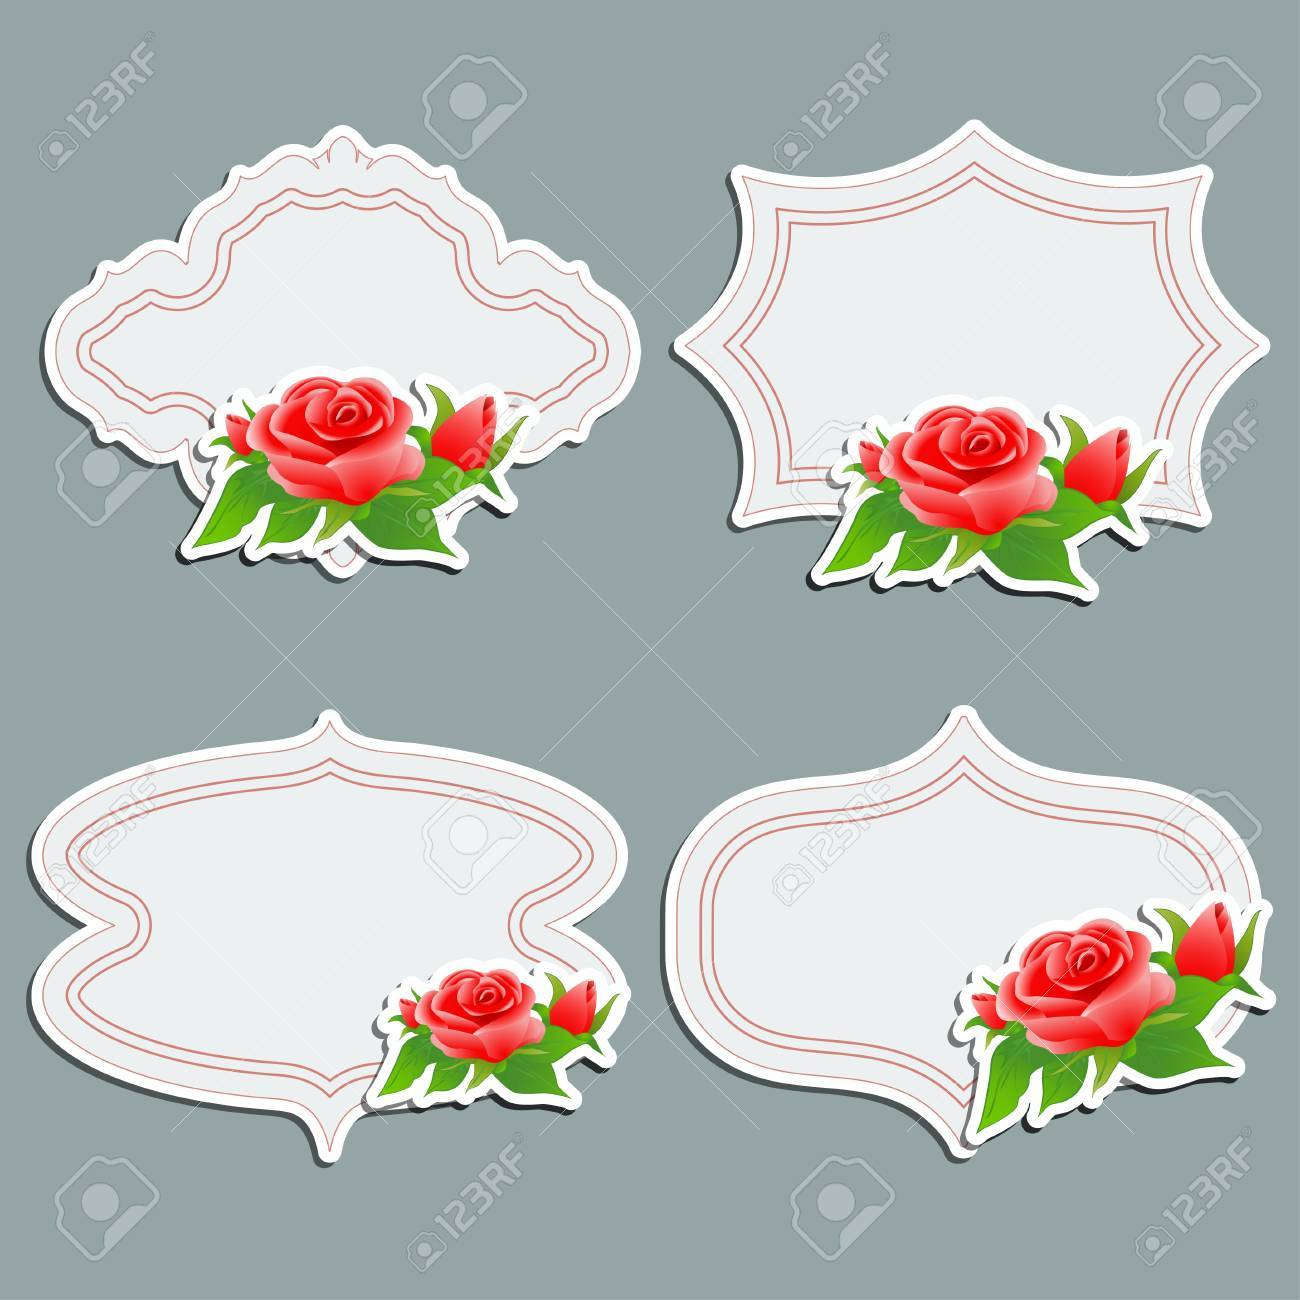 Set Of Vintage Greeting Cards With Bright Roses Vector Illustration